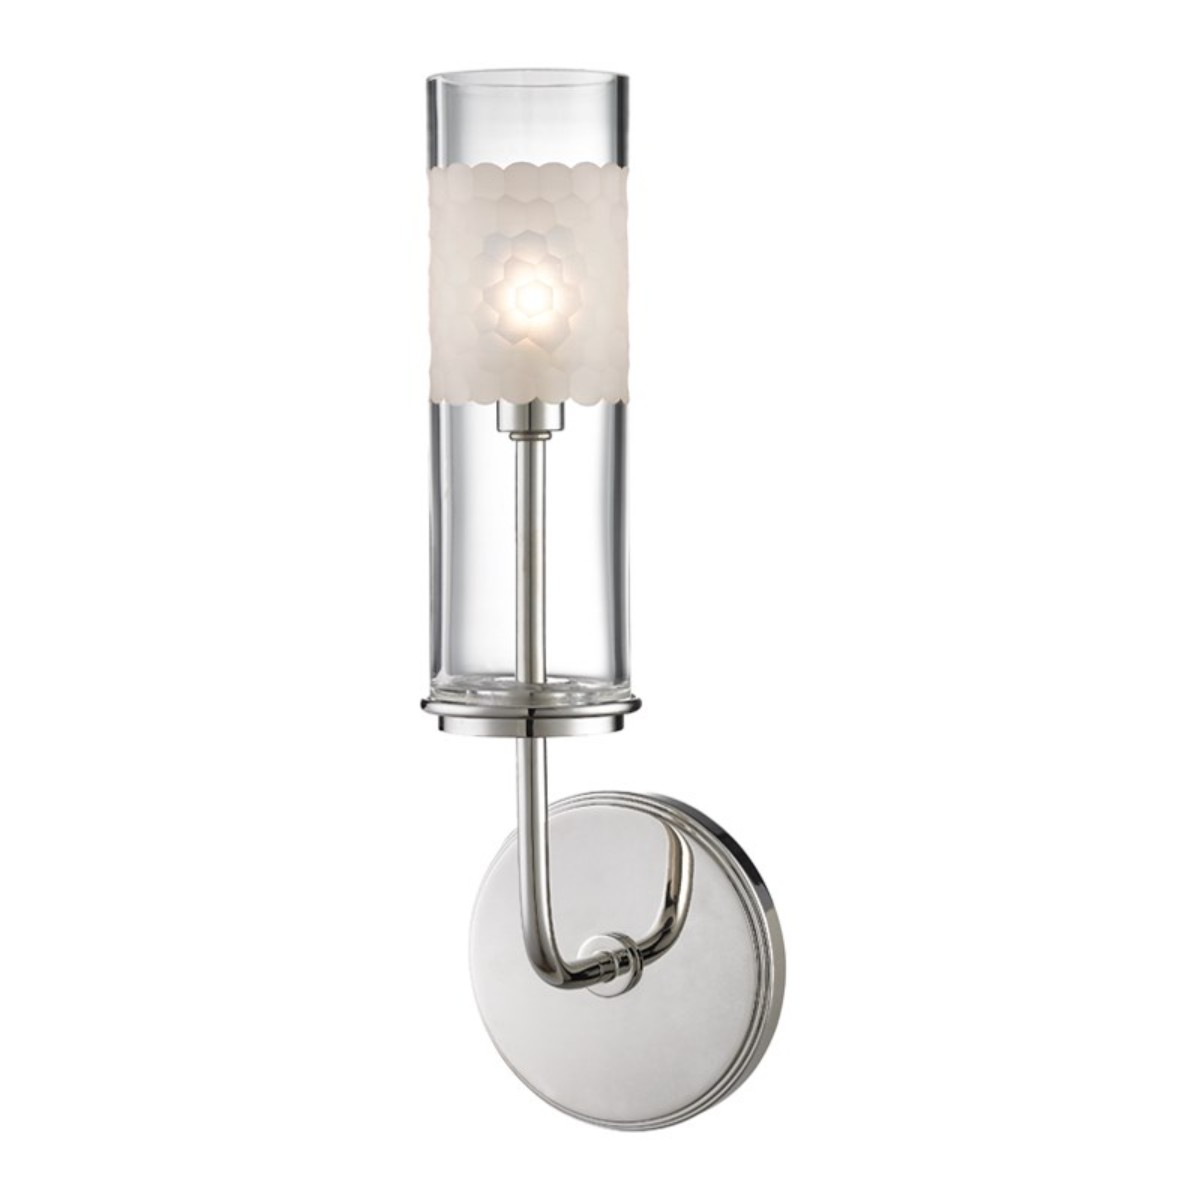 Hudson Valley I Wentworth Wall Sconce I Polished Nickel